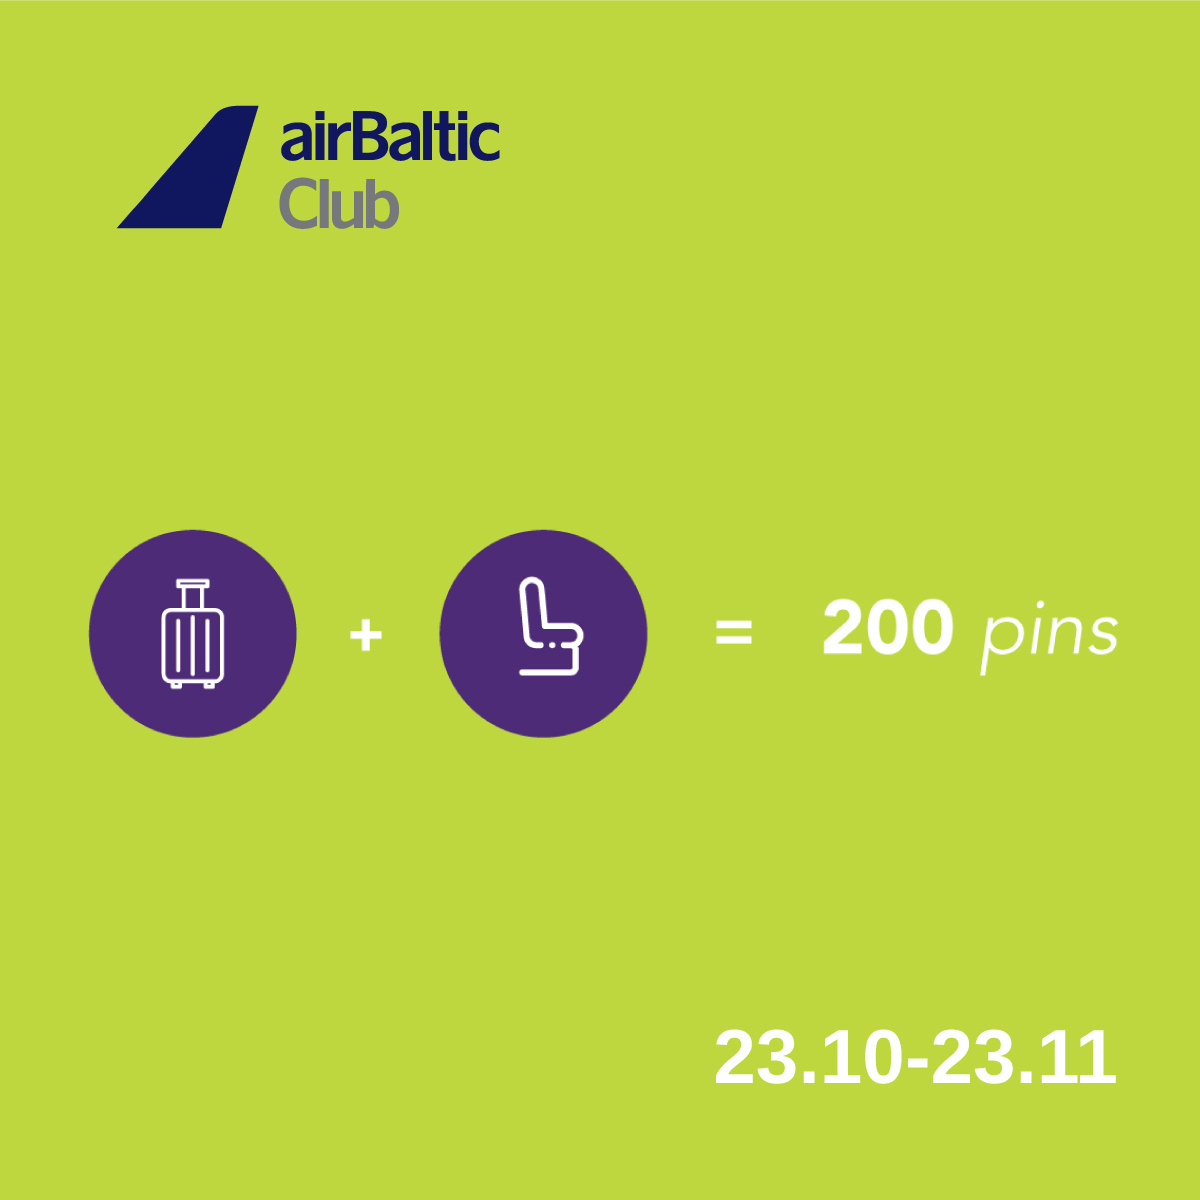 Add a seat reservation or checked baggage to your booking and earn 50 bonus pins. Add both and get 200 bonus pins! image